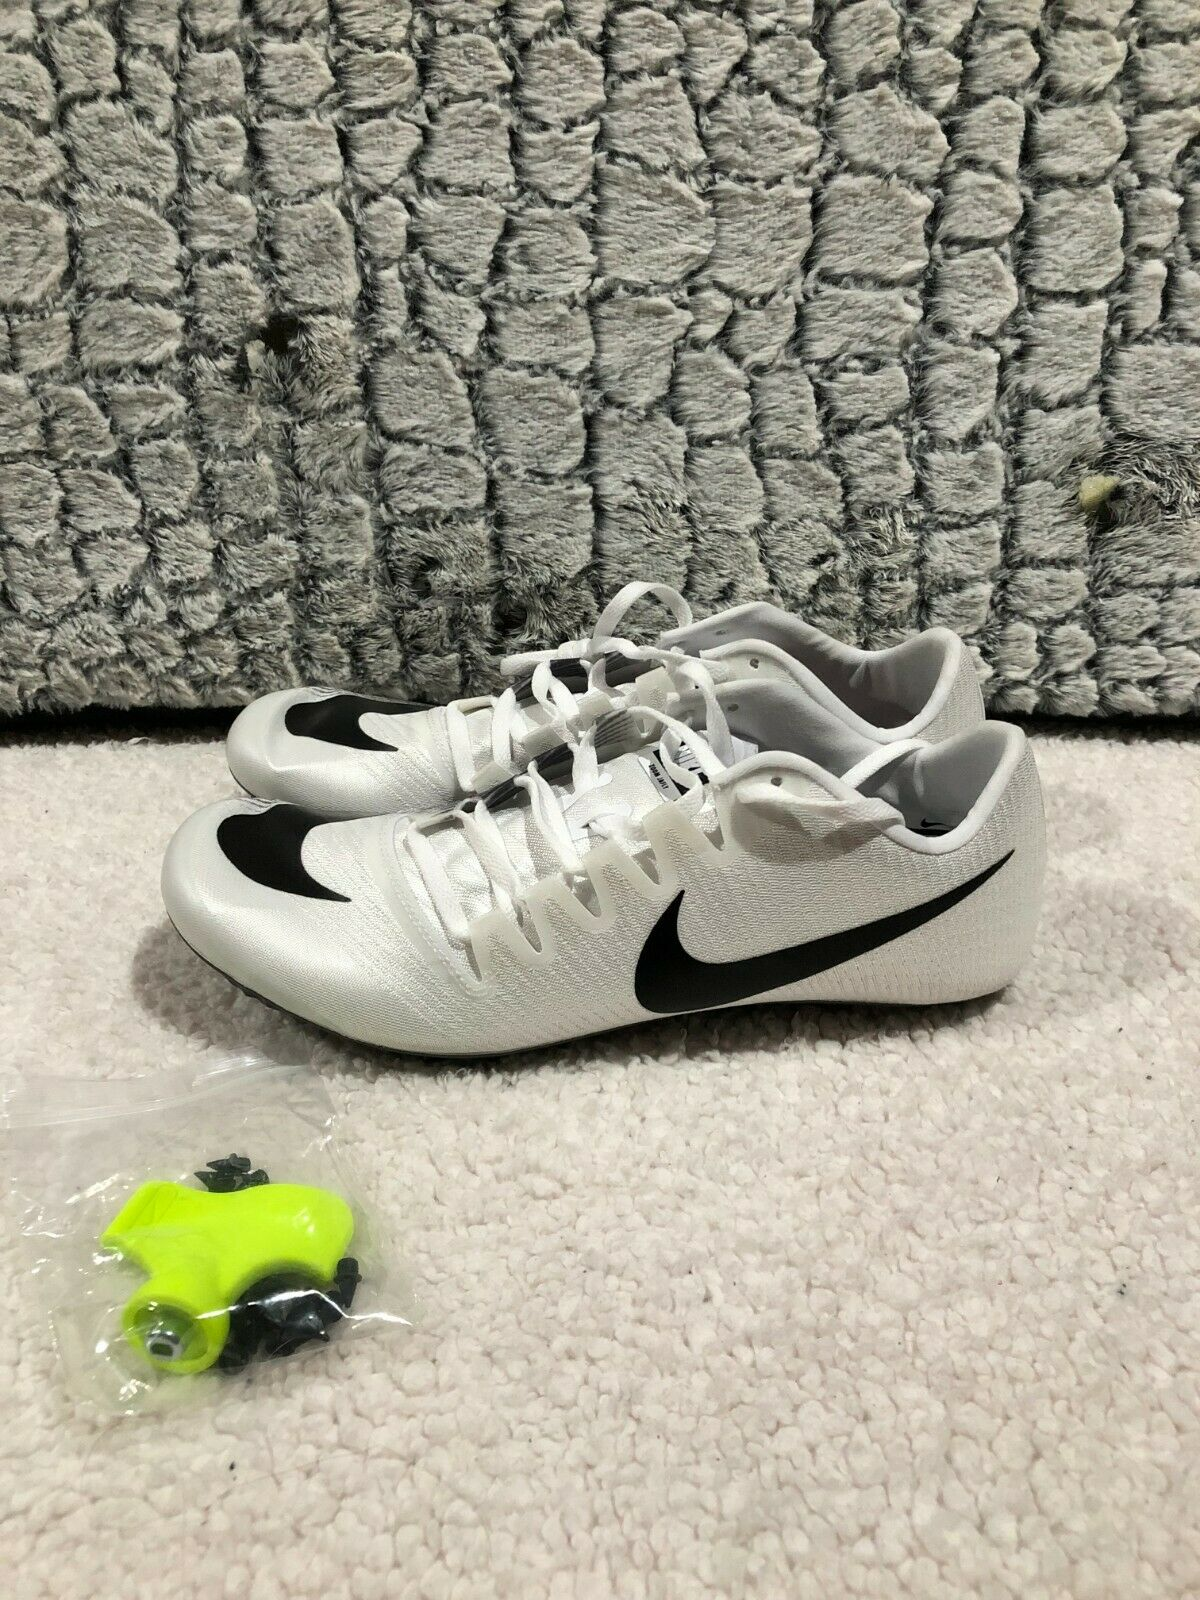 Nike Zoom Ja Fly 3 Track Spikes White Grey Silver Black Size 11 Mens 865633-102